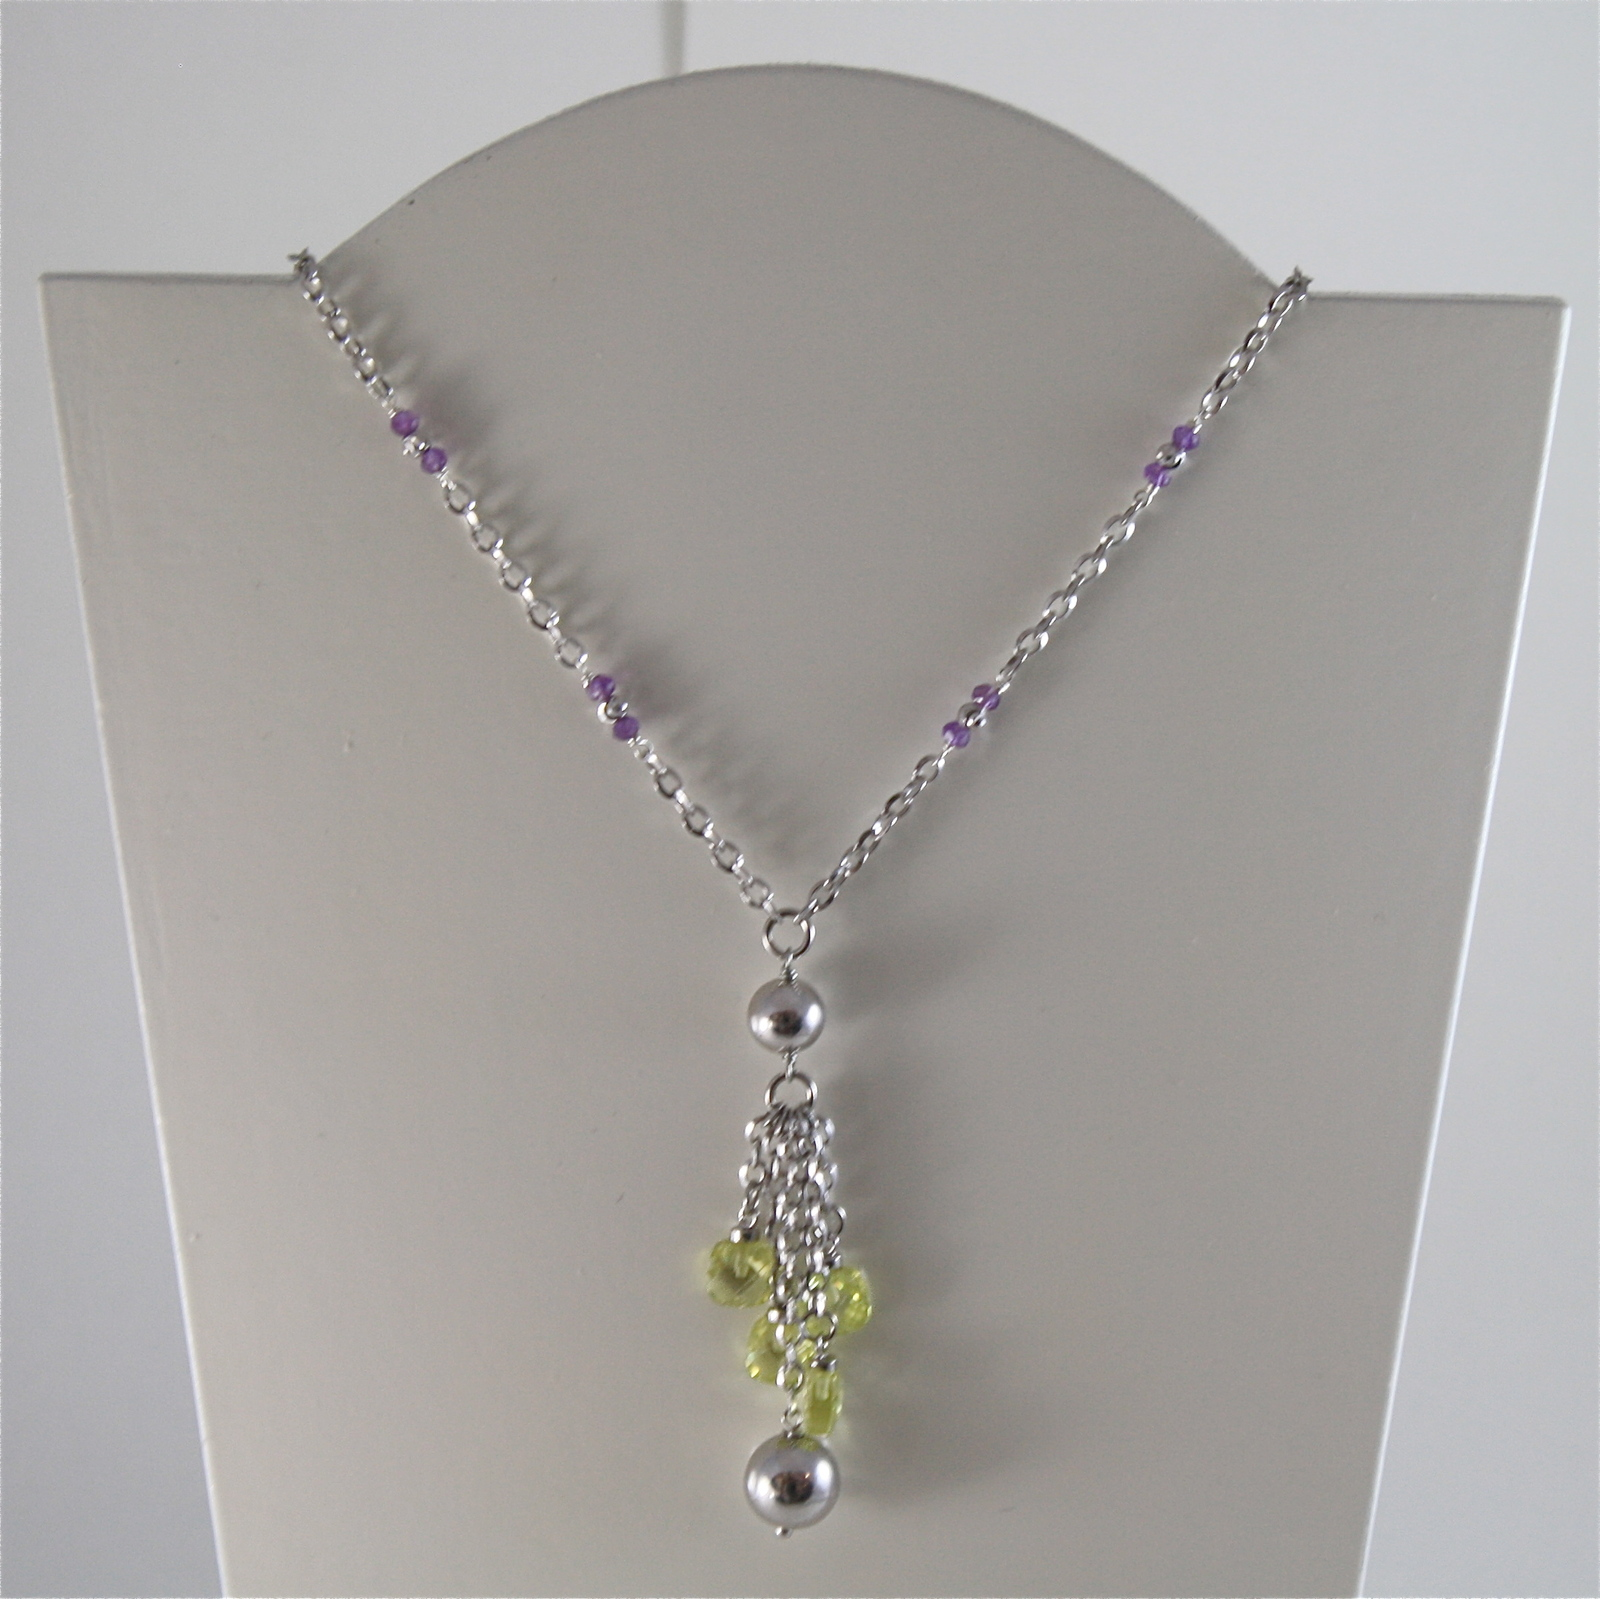 925 RODIUM SILVER NECKLACE WITH FACETED BALLS, AMETYST AND CRYSTAL MADE IN ITALY